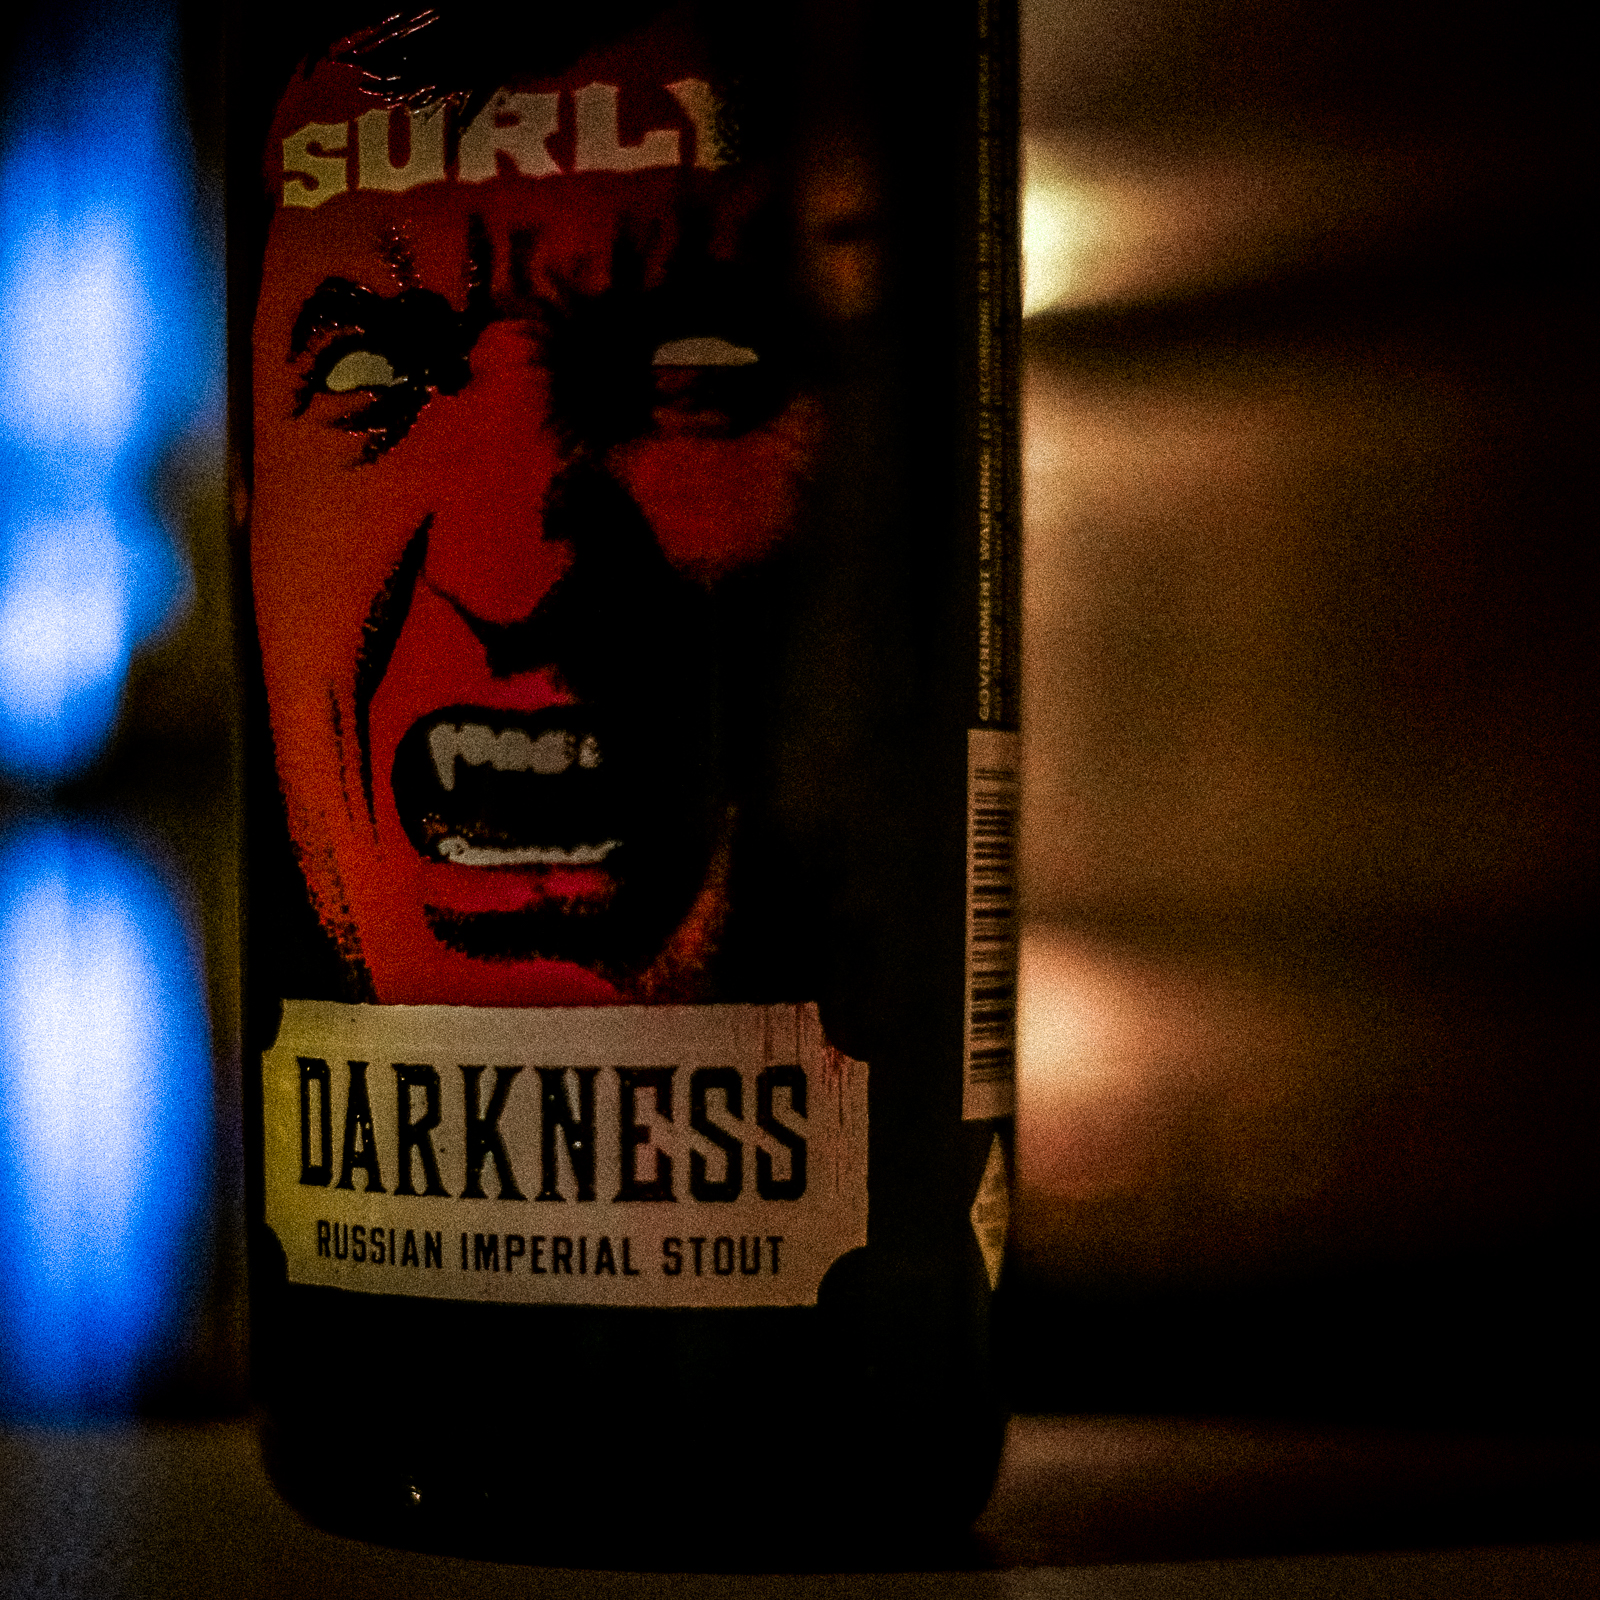 Surly Brewing Company's Darkness (2010)